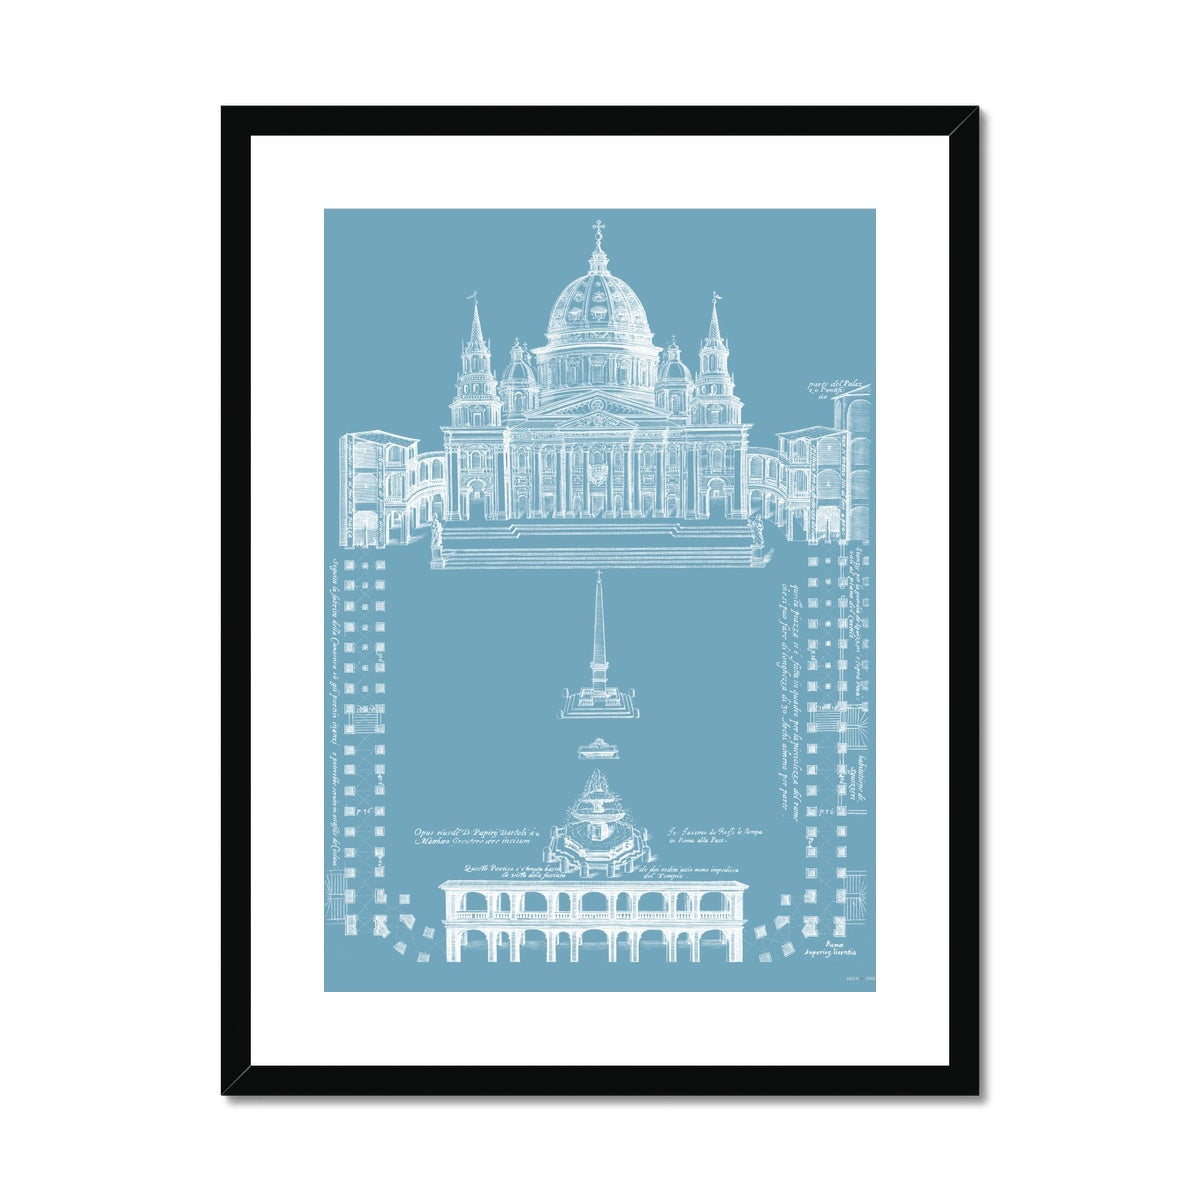 Saint Peter's Basilica - Site Plan - Blue -  Framed & Mounted Print